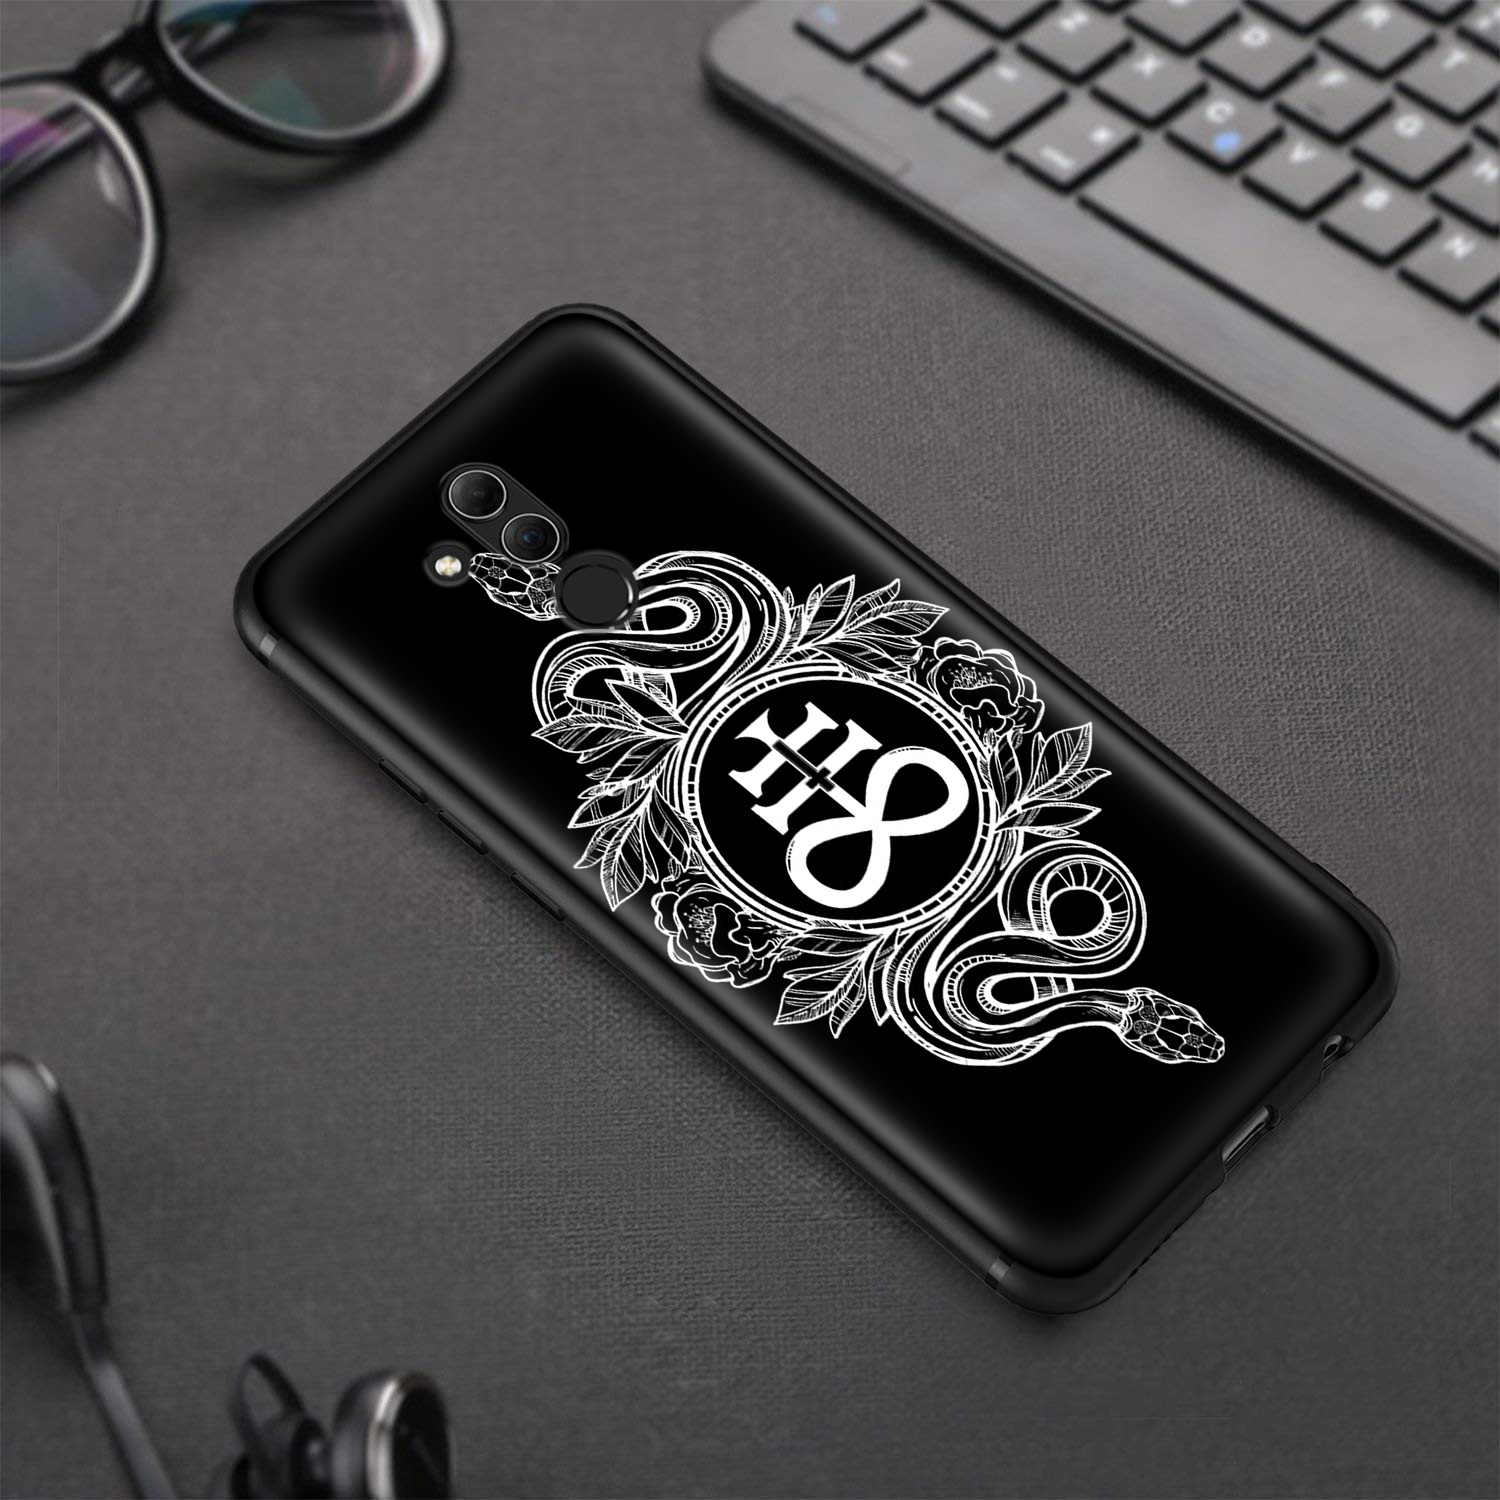 Lavaza Pentagram 666 Demonic Satanic Case for Huawei Honor 10 9 8 8x 8c 7x 7c 7a Note Nova 3 3i Lite Y9 Y7 Y6